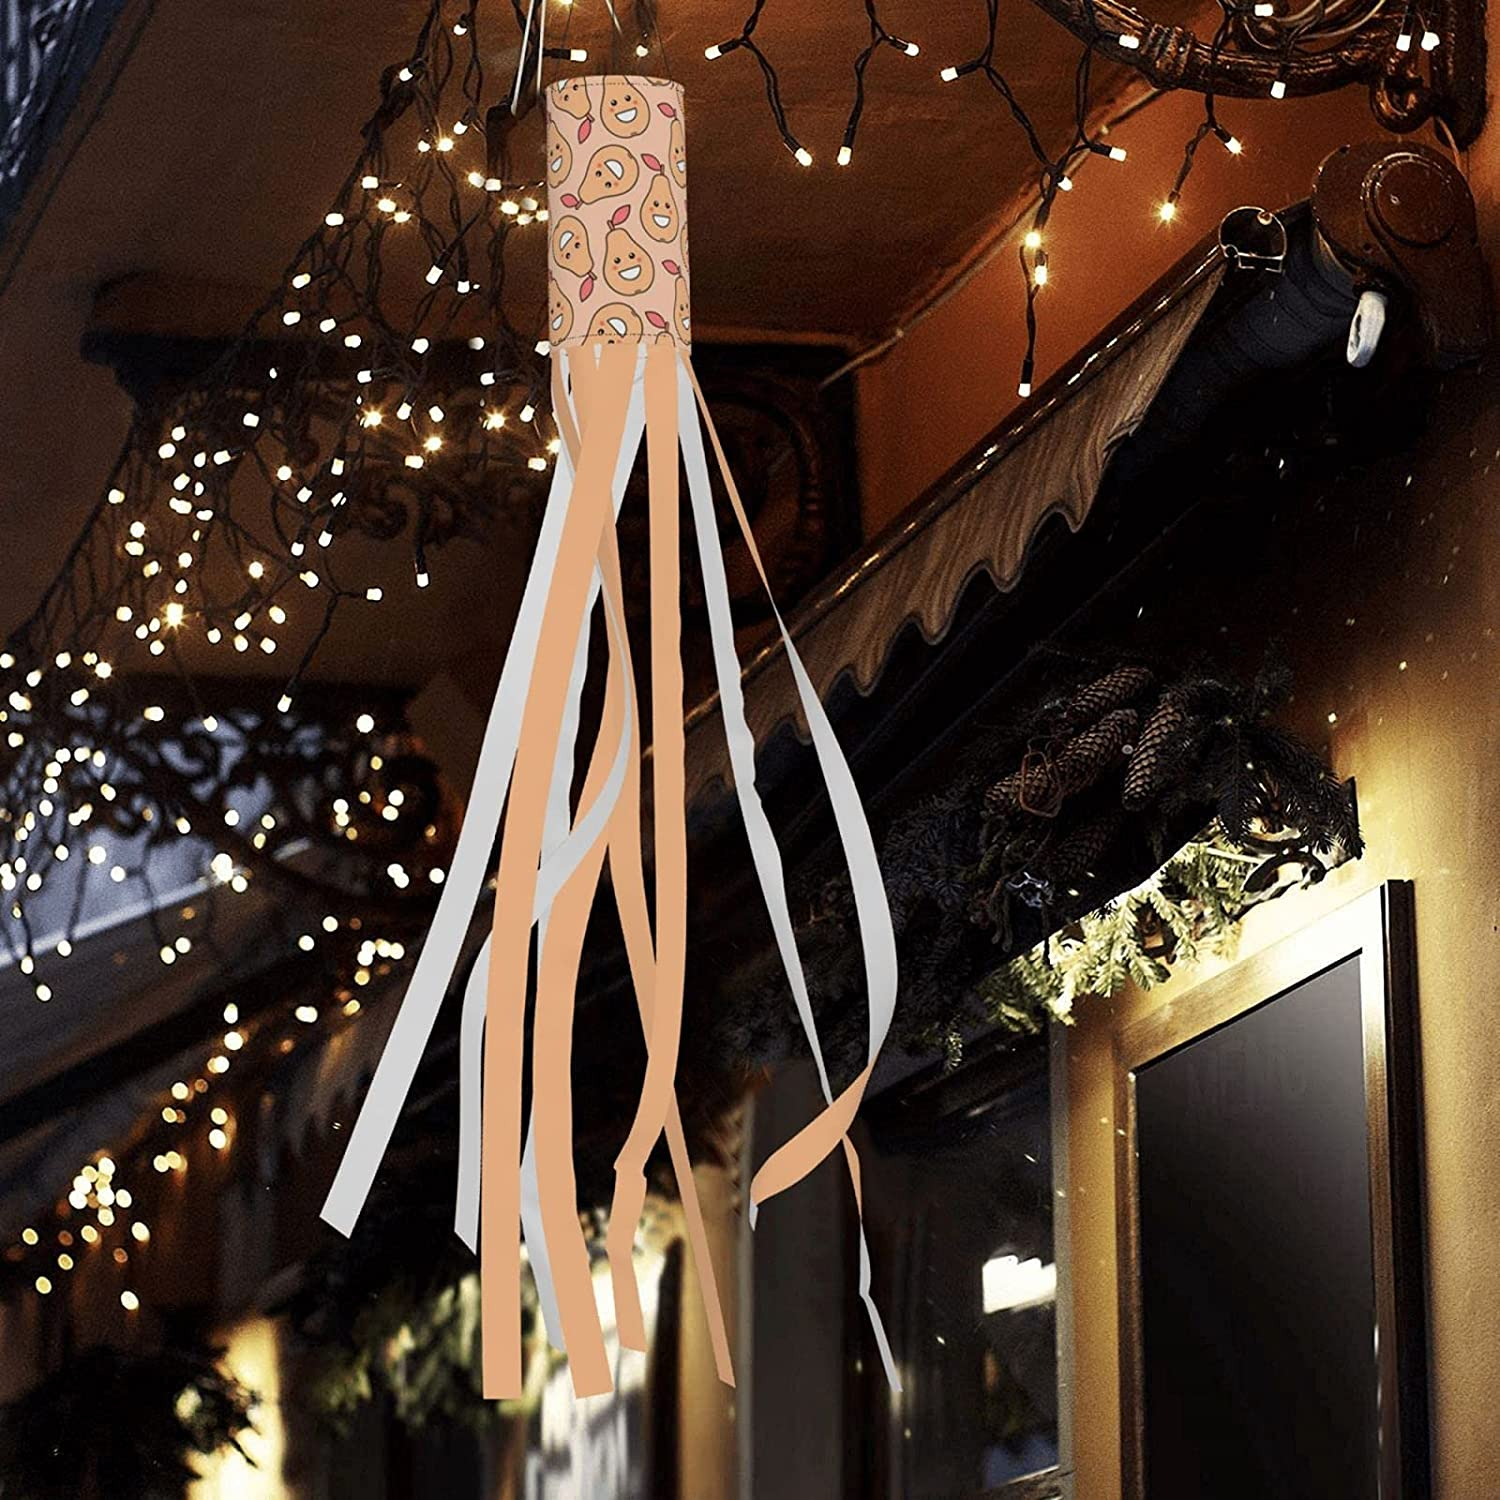 Qomrcy Fruit Expression Halloween Wind online shop Outdoor Bag Ha Ranking integrated 1st place Lights Led